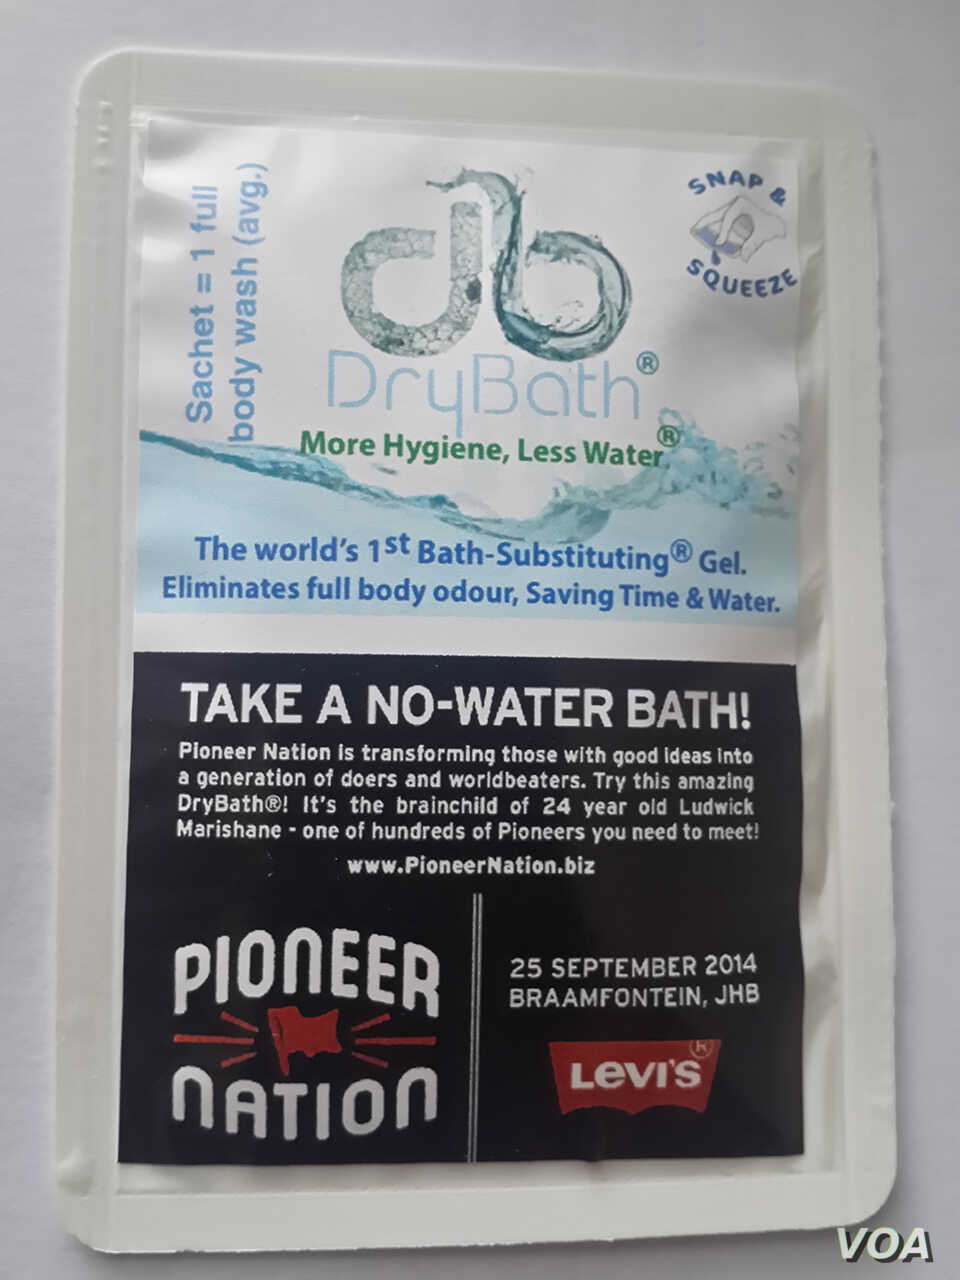 The DryBath gel is available in a sachet, and Ludwick Marishane says 15 ml are enough to wash one's entire body. (Courtesy - Ludwick Marishane)